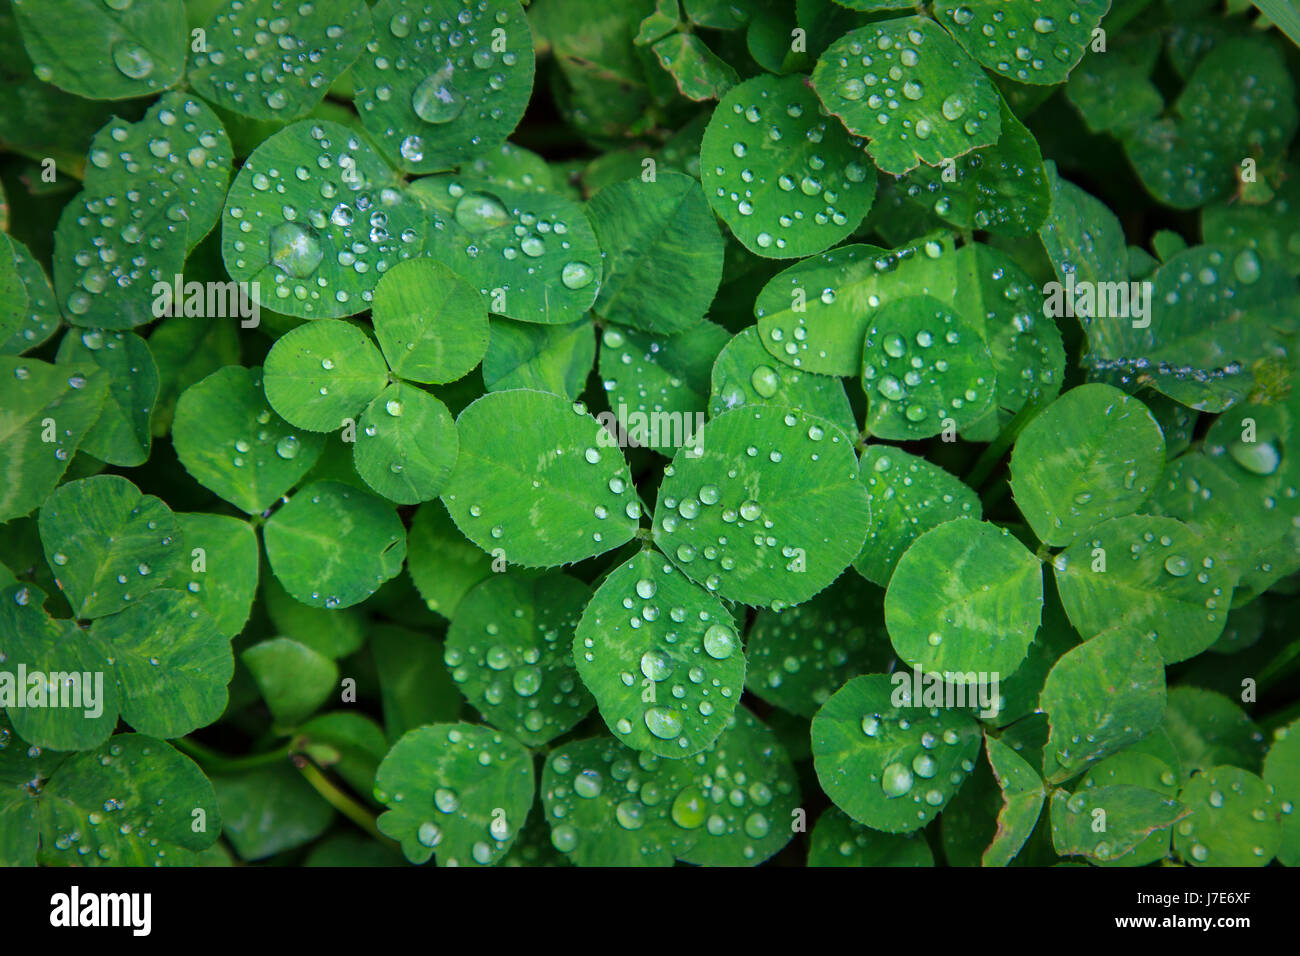 Rain drops on three leaf clover patch - Stock Image